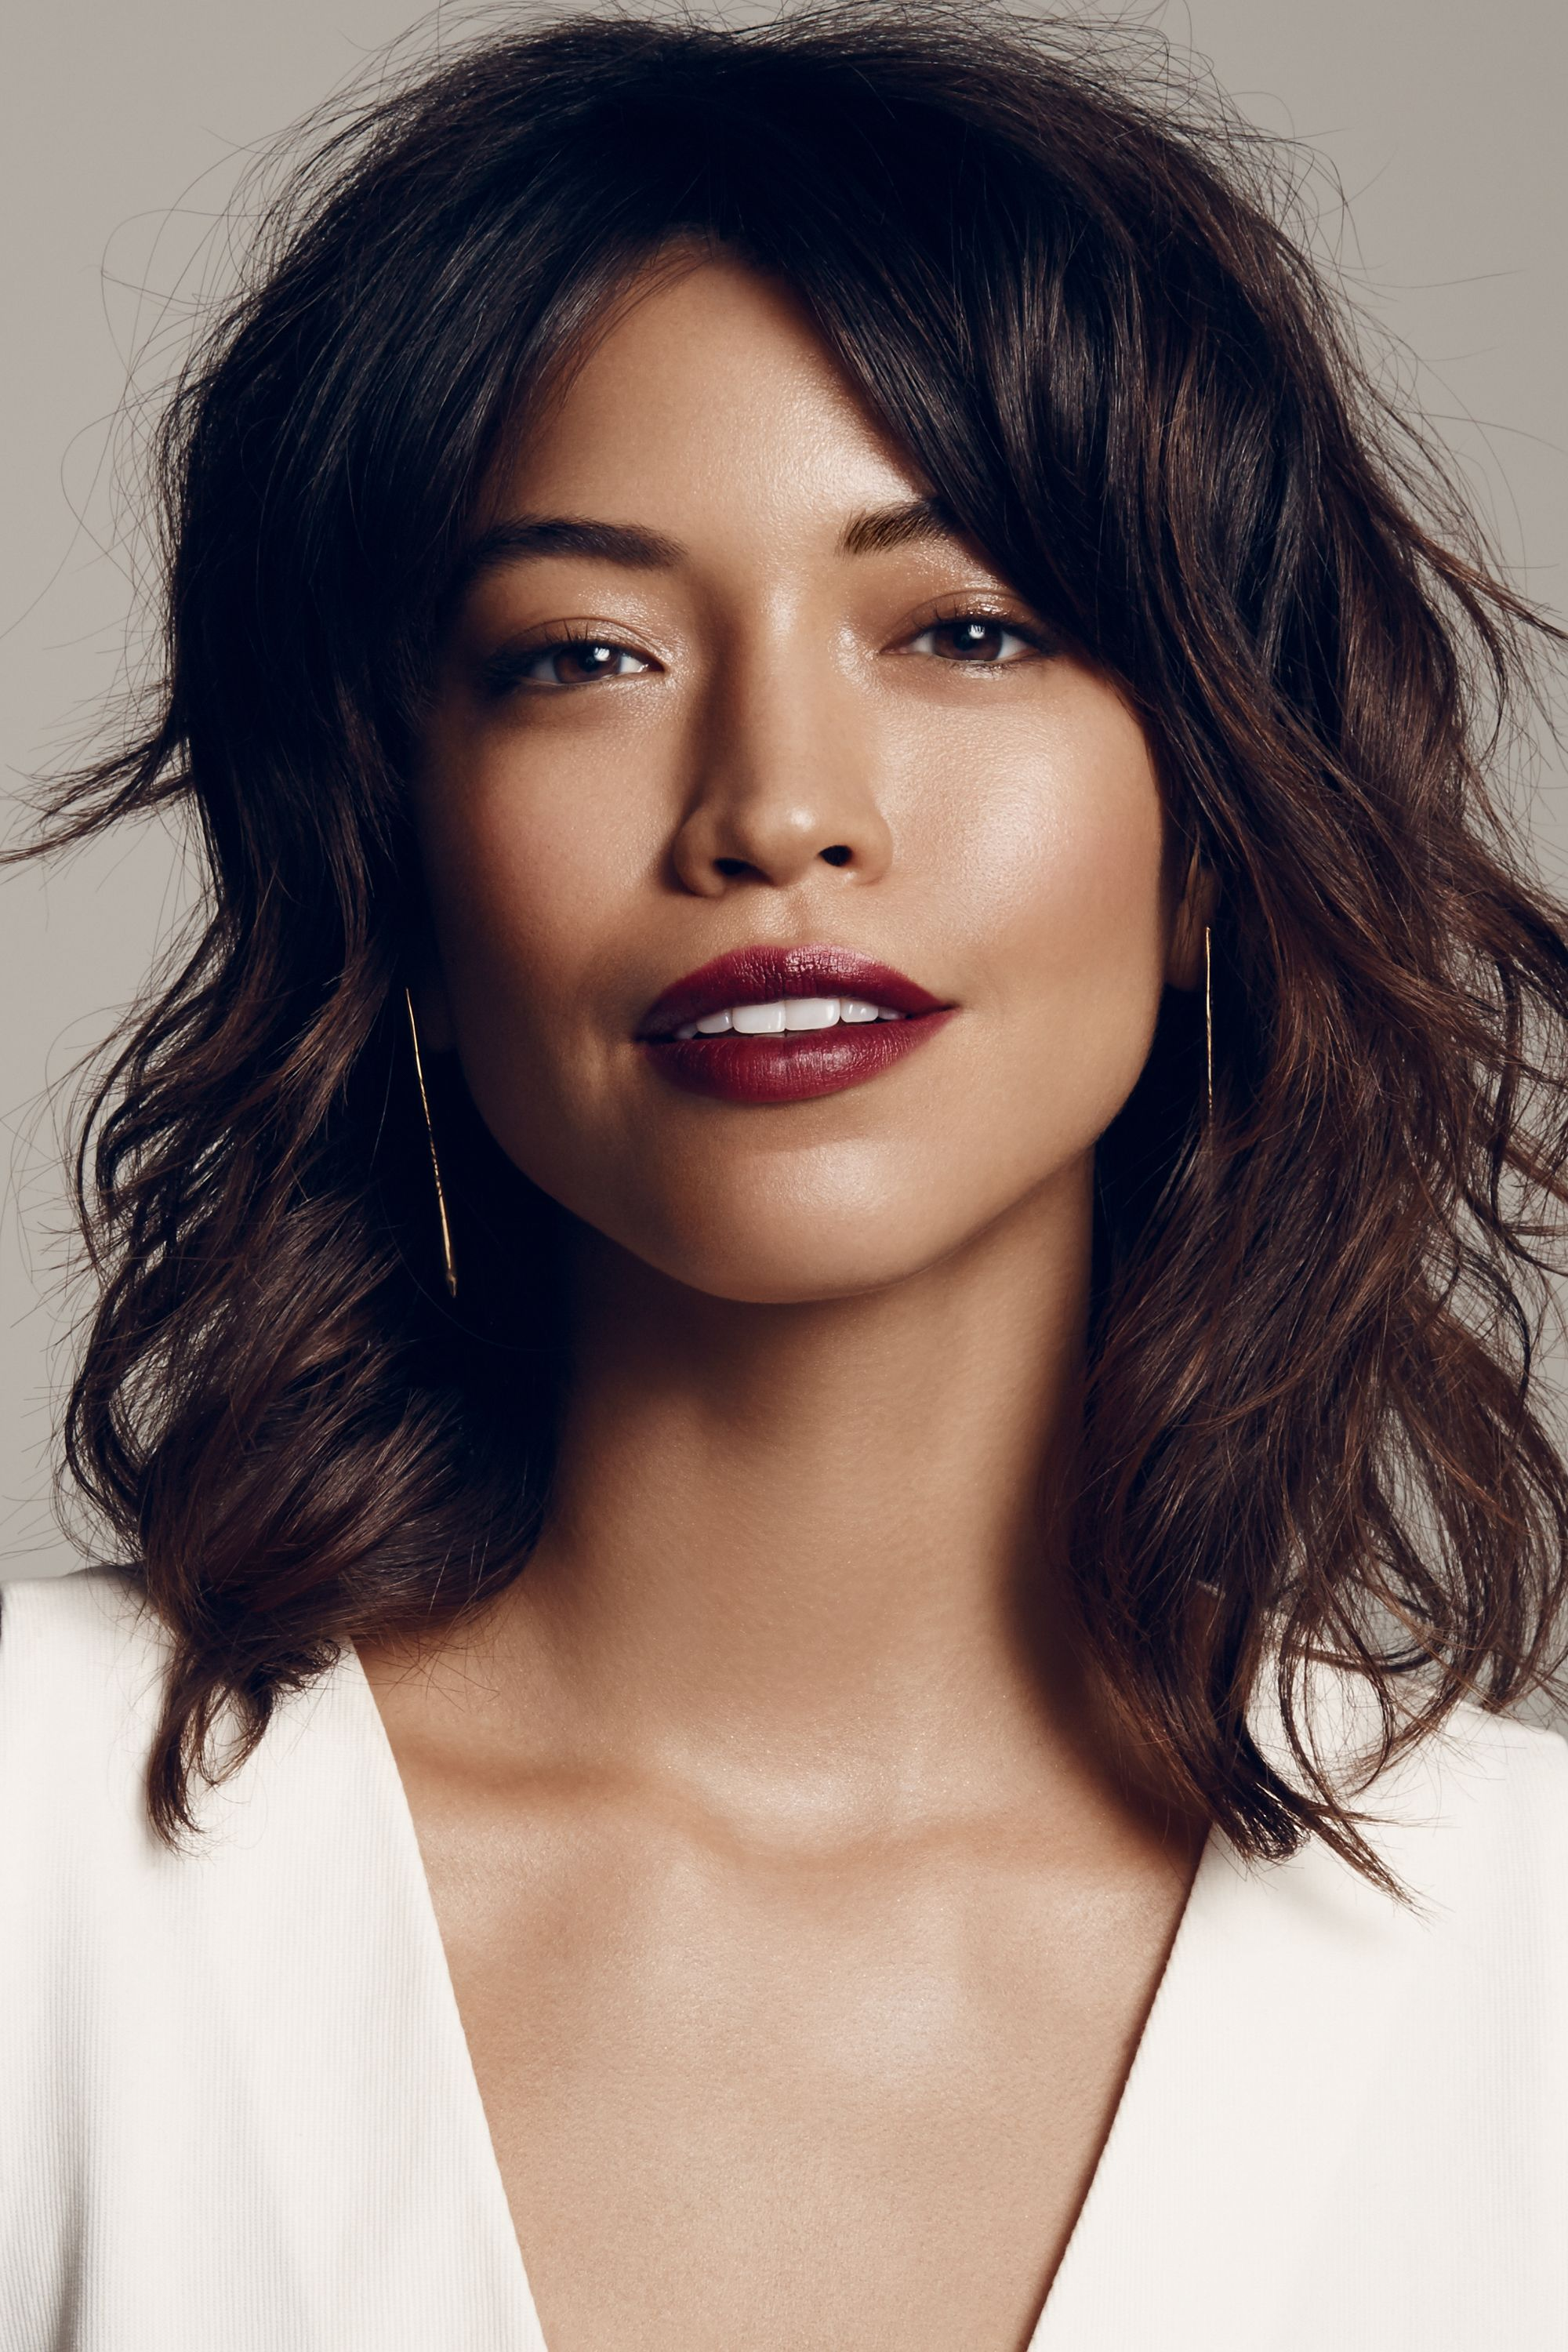 "<p>An ultra-dark, matte pout is the gotta-have-it look of the season. And the genius thing about going strong on the lip is you can slack on the rest your makeup. ""Let your skin speak for itself with a dewy, healthy glow that contrasts the matte texture of the lip,"" says Park. ""You don't even need blush. Instead, use a little bronzer to warm up your face and to lightly contour."" Keep your eyes naked save for a bit of a bronzy cream highlighter in the inner corners and on the center of the lids. ""The more undone looking, the edgier the vibe,"" she explains.</p>"